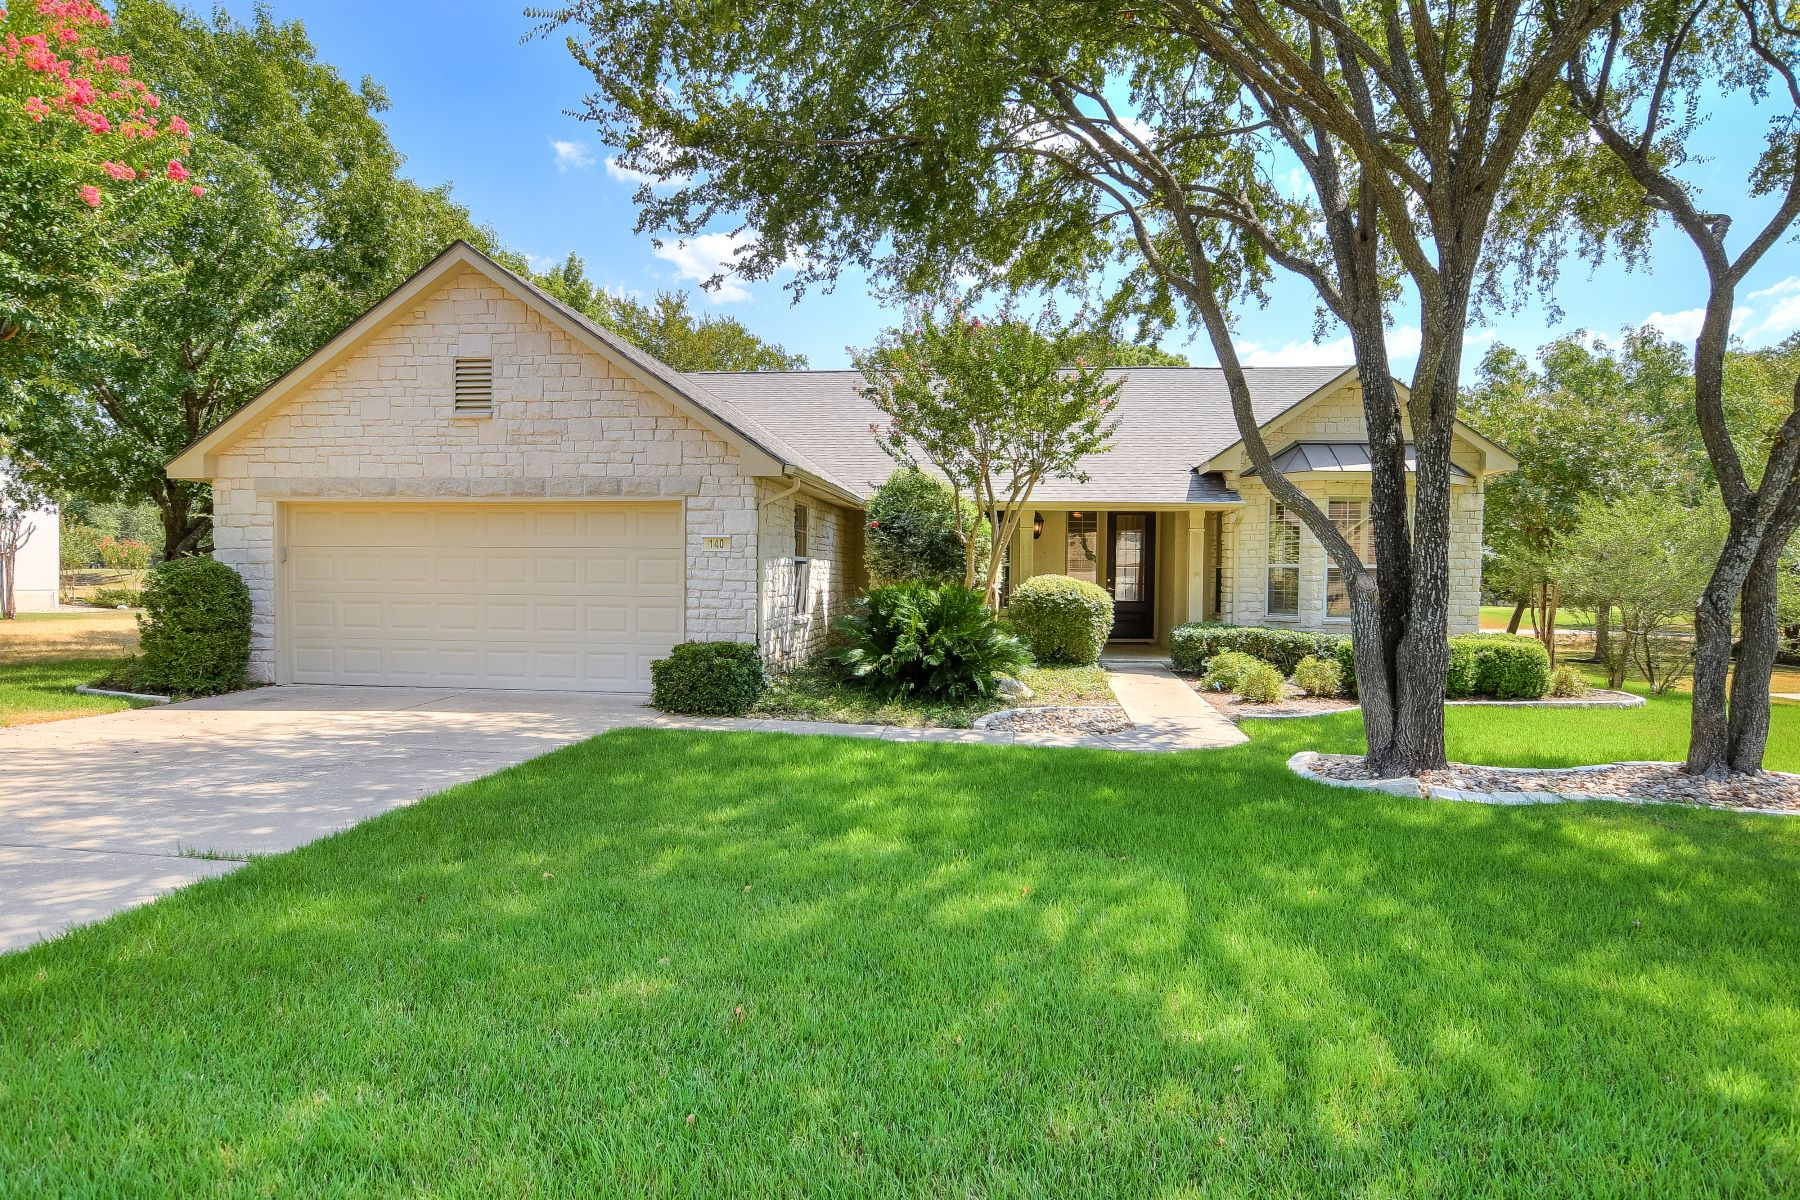 Single Family Homes for Sale at 140 Enchanted Drive, Georgetown, TX 78633 140 Enchanted Drive Georgetown, Texas 78633 United States